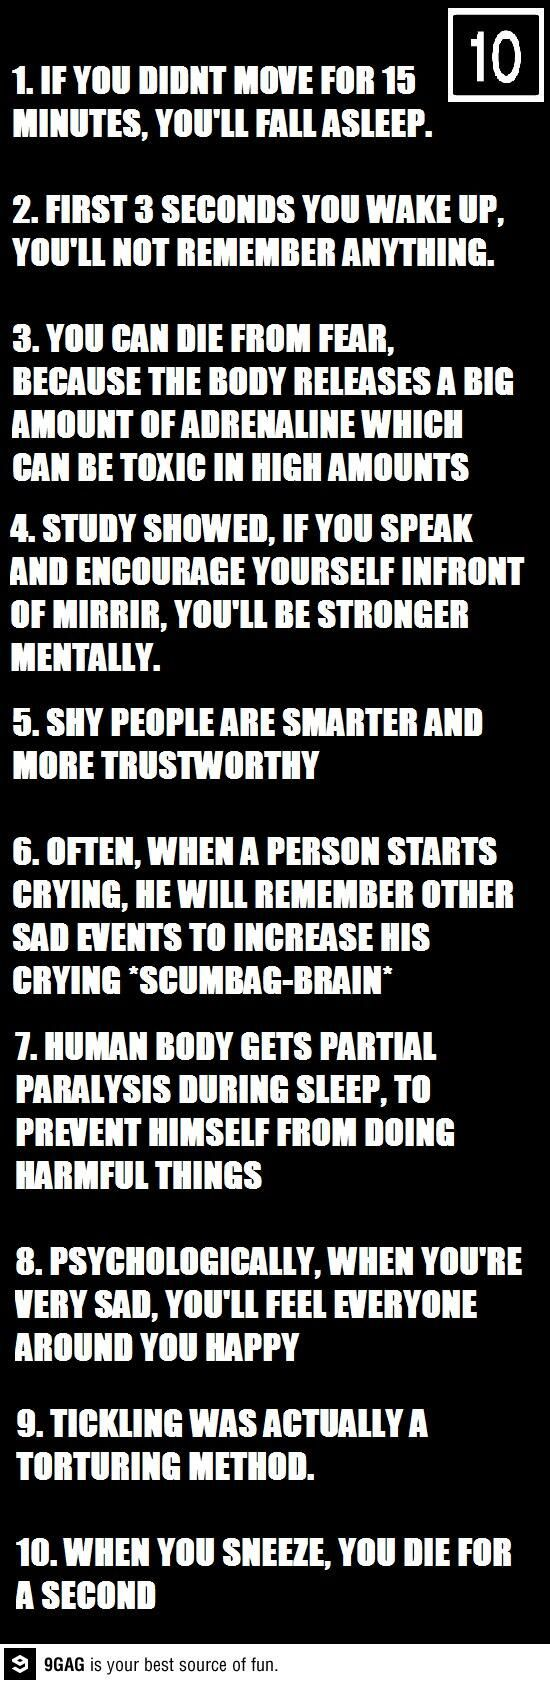 So cool - the last one made me giggle! Wtf is wrong with me